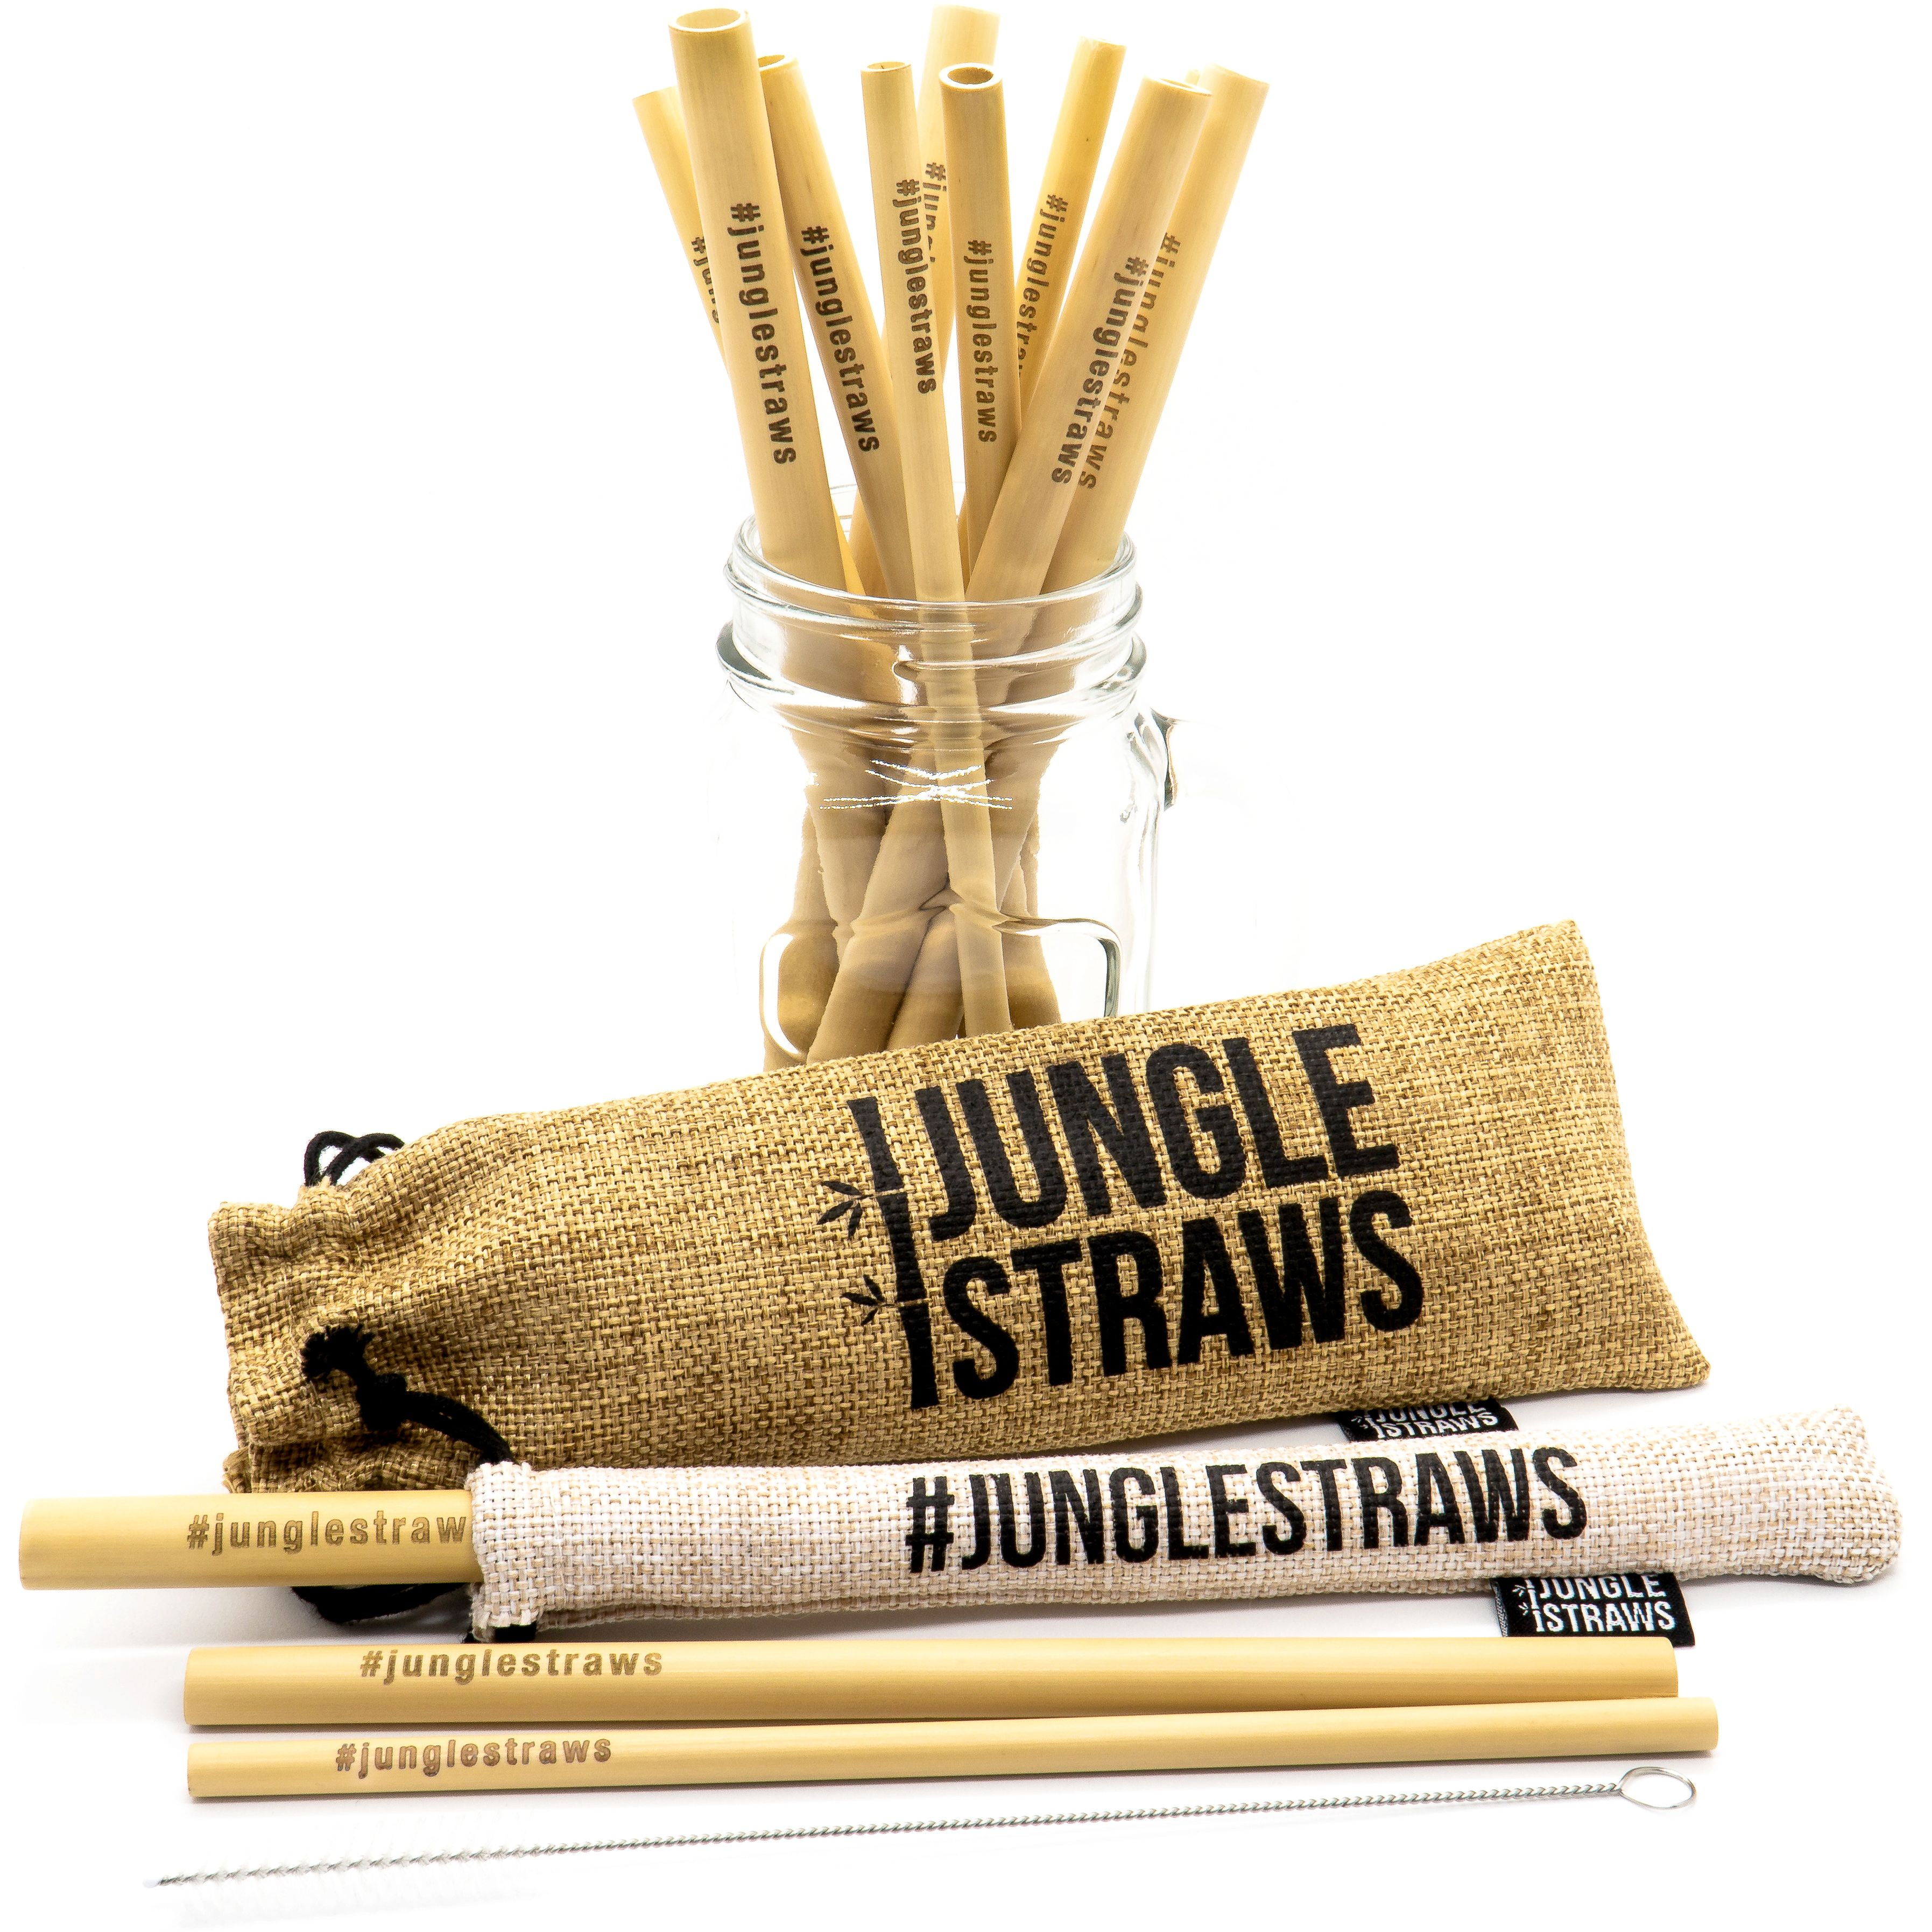 Our sustainable bamboo straws are 100% organic, handmade, and